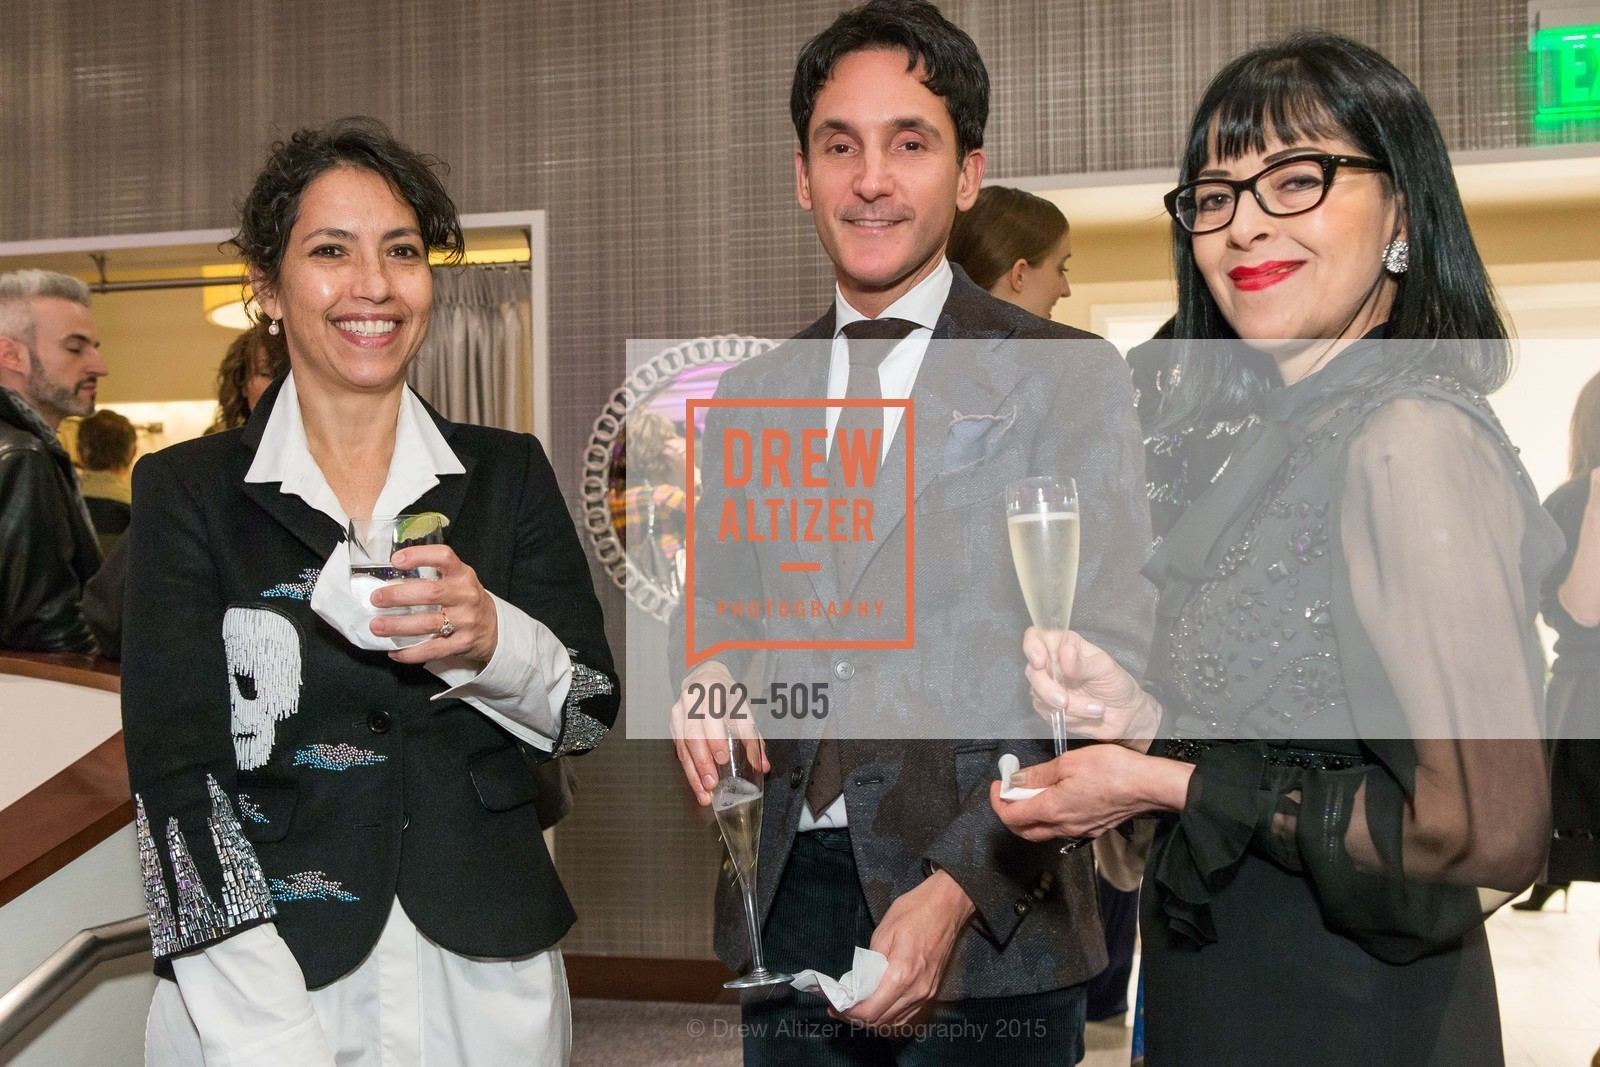 Maya Meux, James Krohn, Libertine Cocktail Party at Neiman Marcus, Neiman Marcus, November 10th, 2015,Drew Altizer, Drew Altizer Photography, full-service agency, private events, San Francisco photographer, photographer california